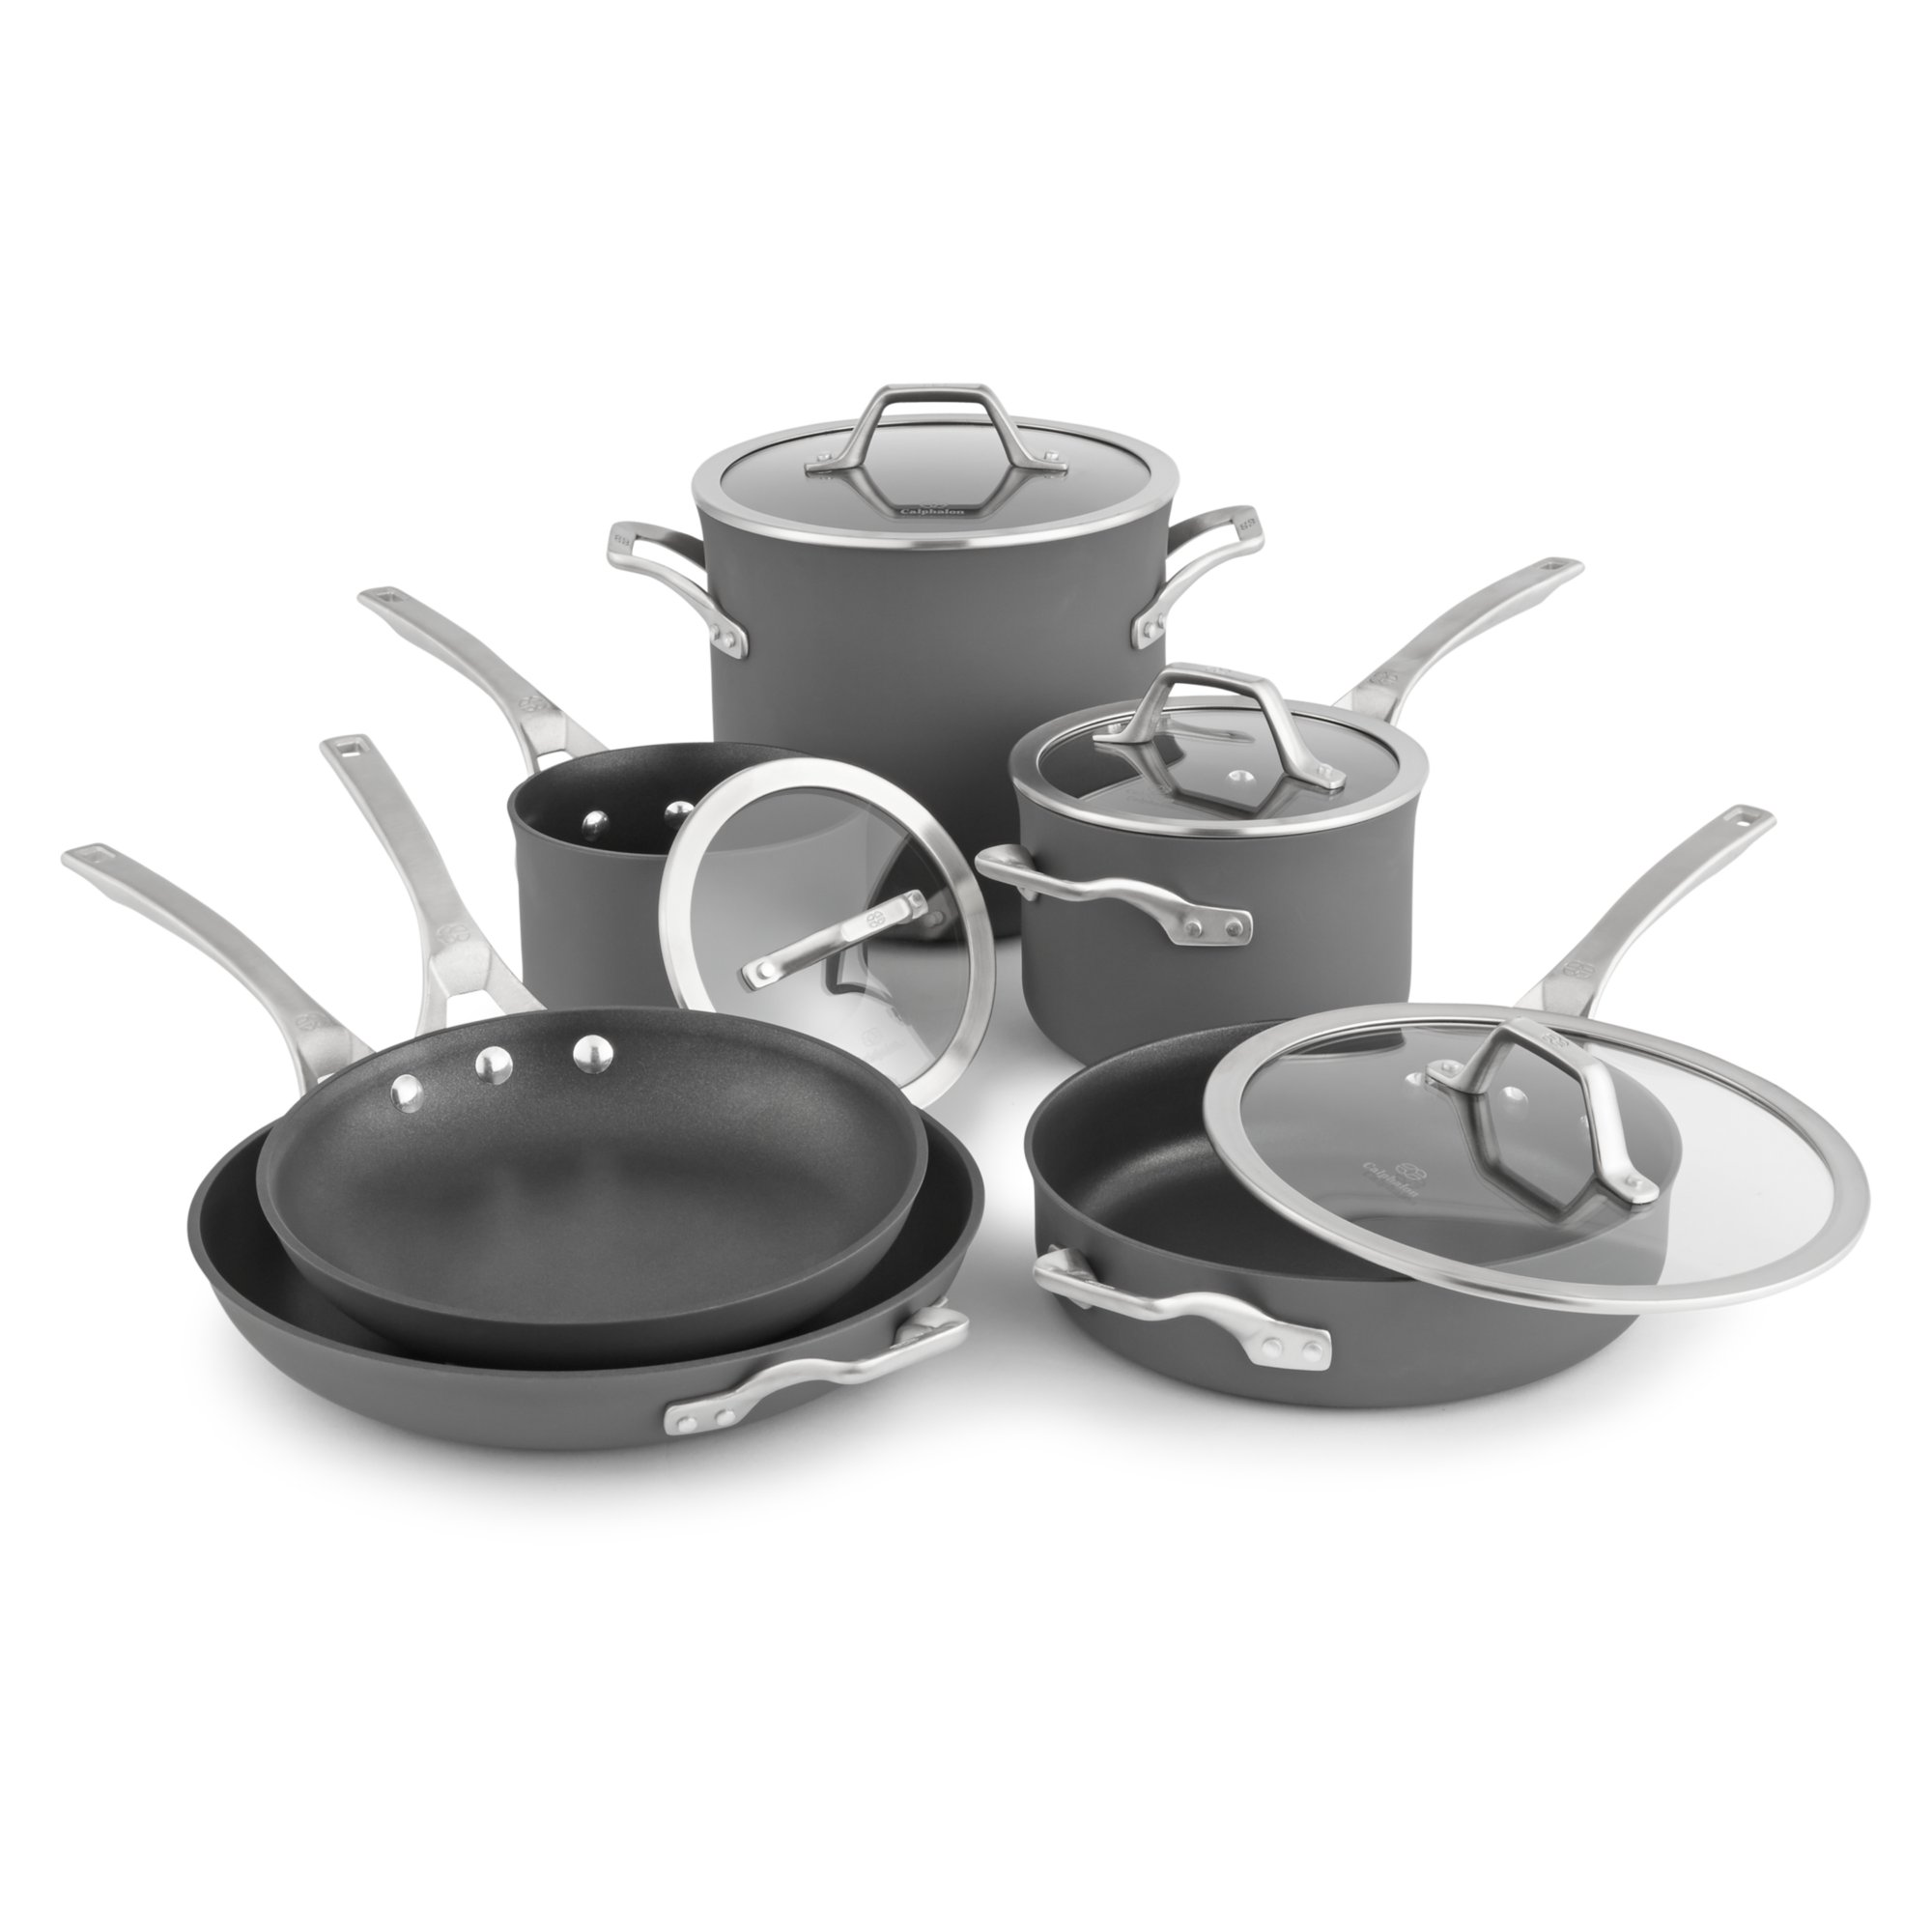 Calphalon Signature Nonstick 10 Pc Cookware Set